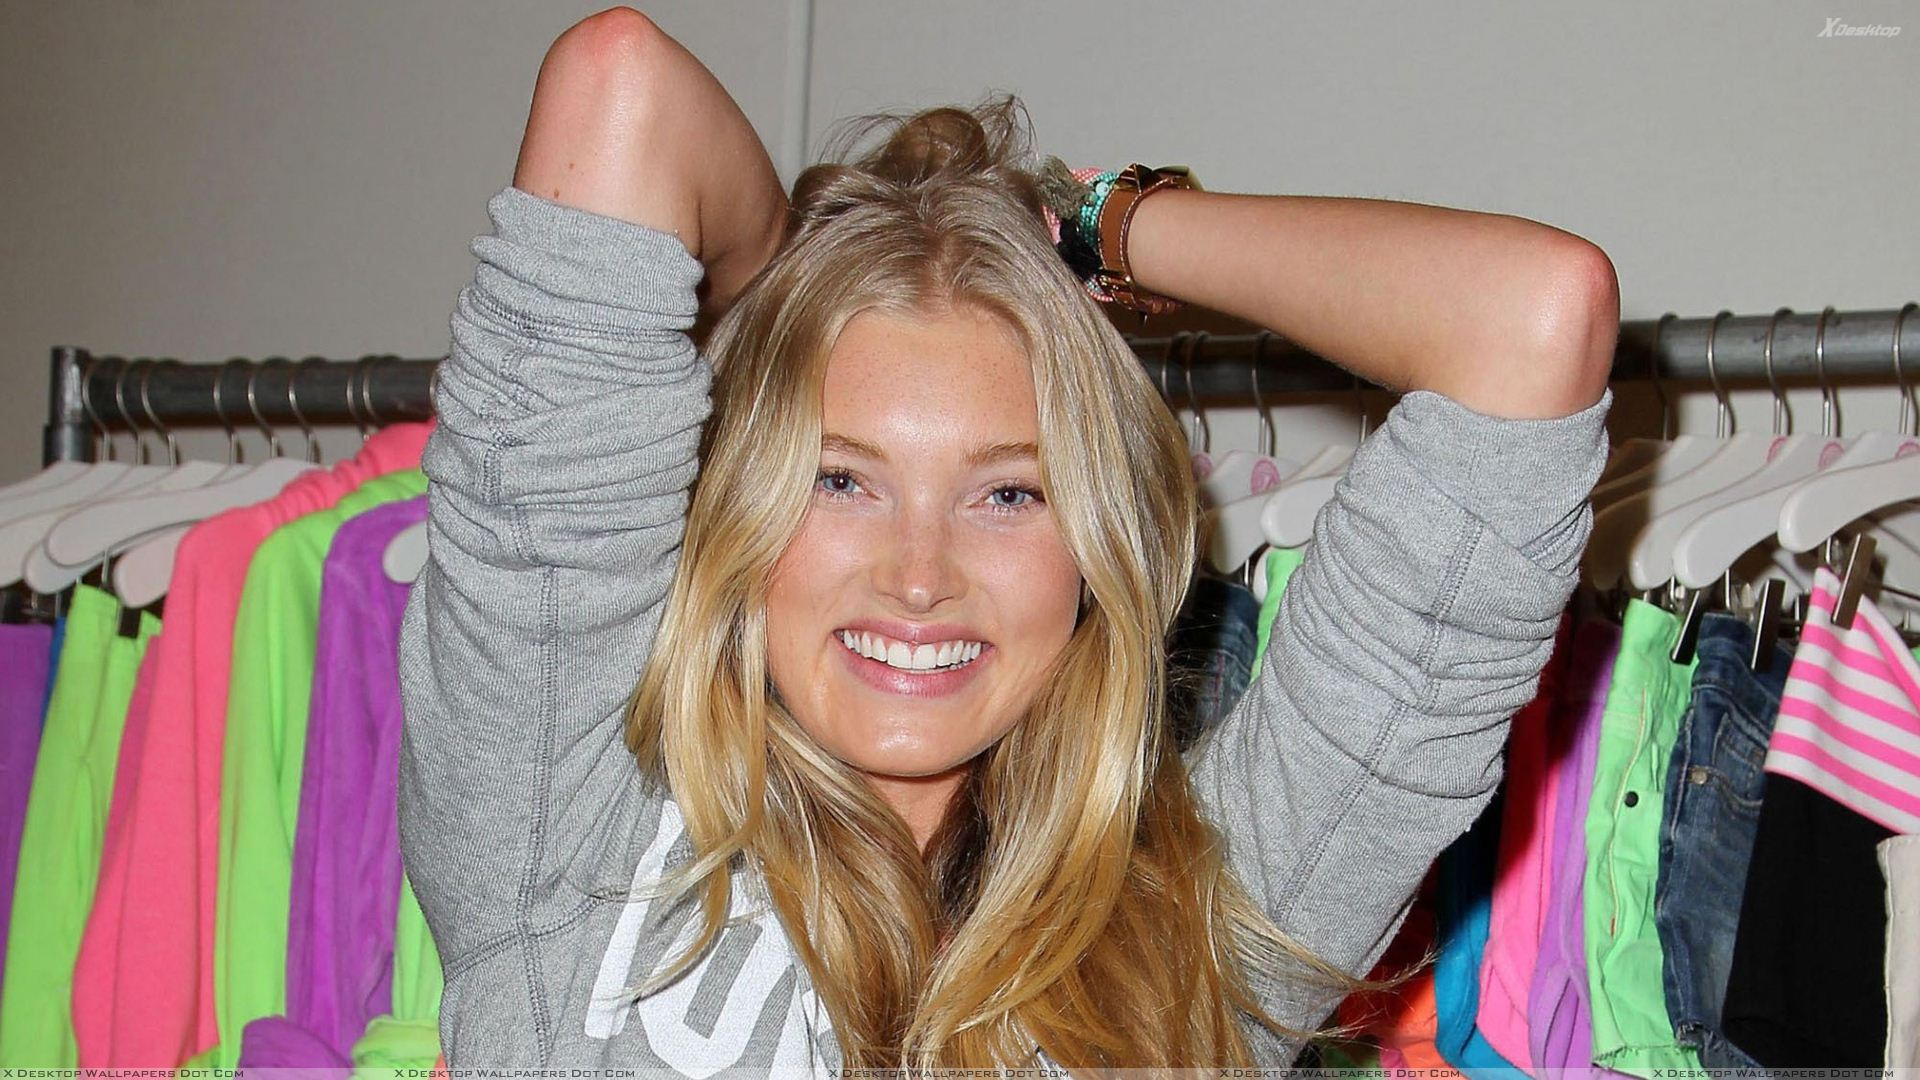 Elsa Hosk Wallpapers Photos Images in HD 1920x1080